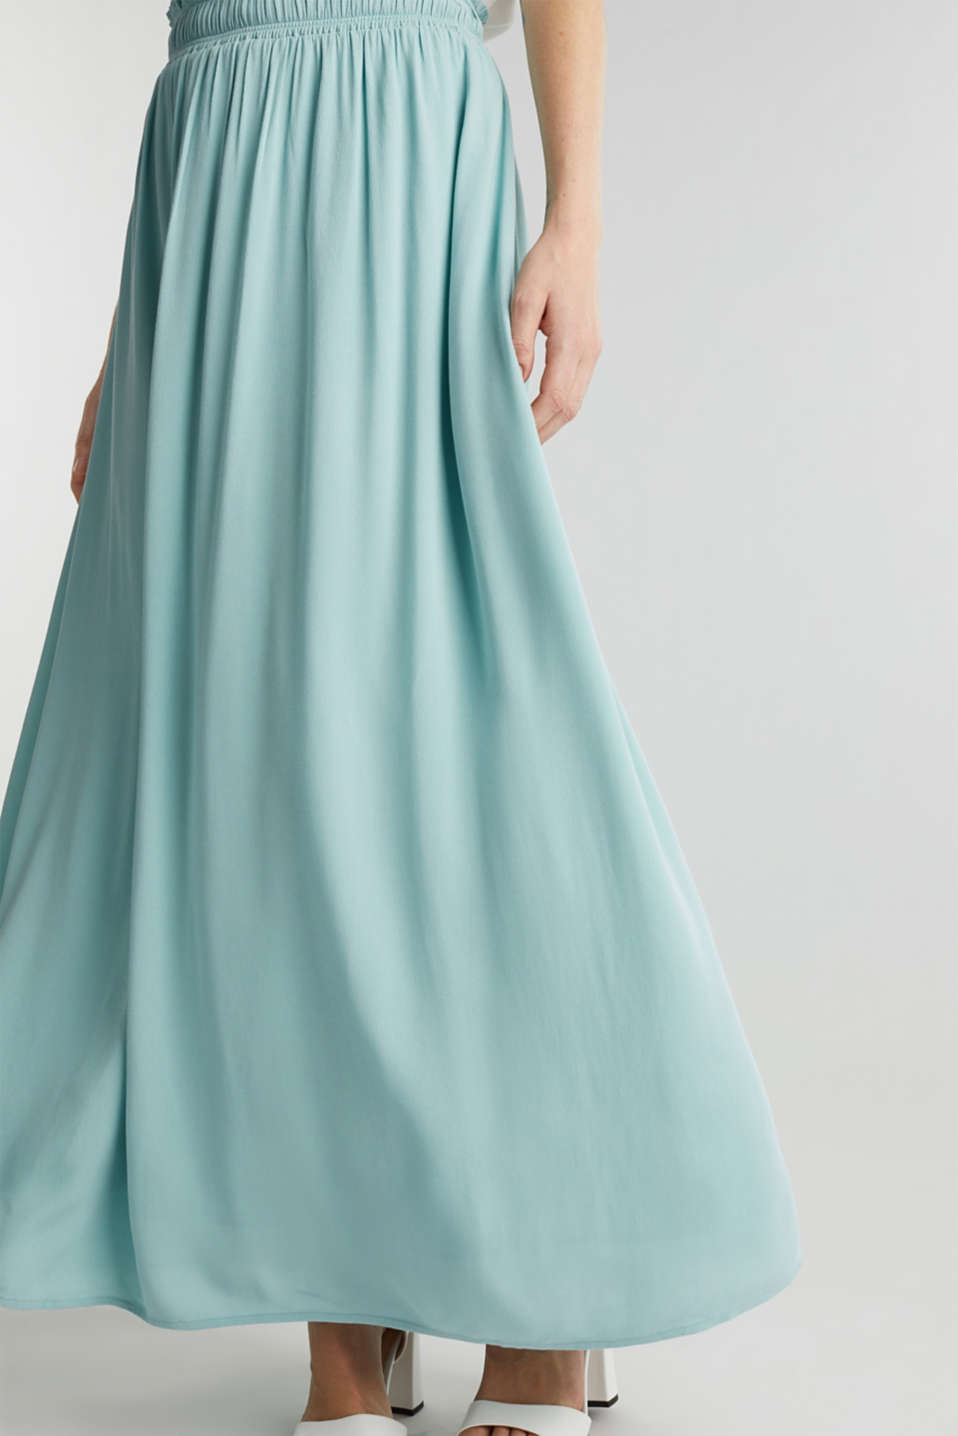 Maxi skirt in flowing crêpe, LIGHT AQUA GREEN, detail image number 2